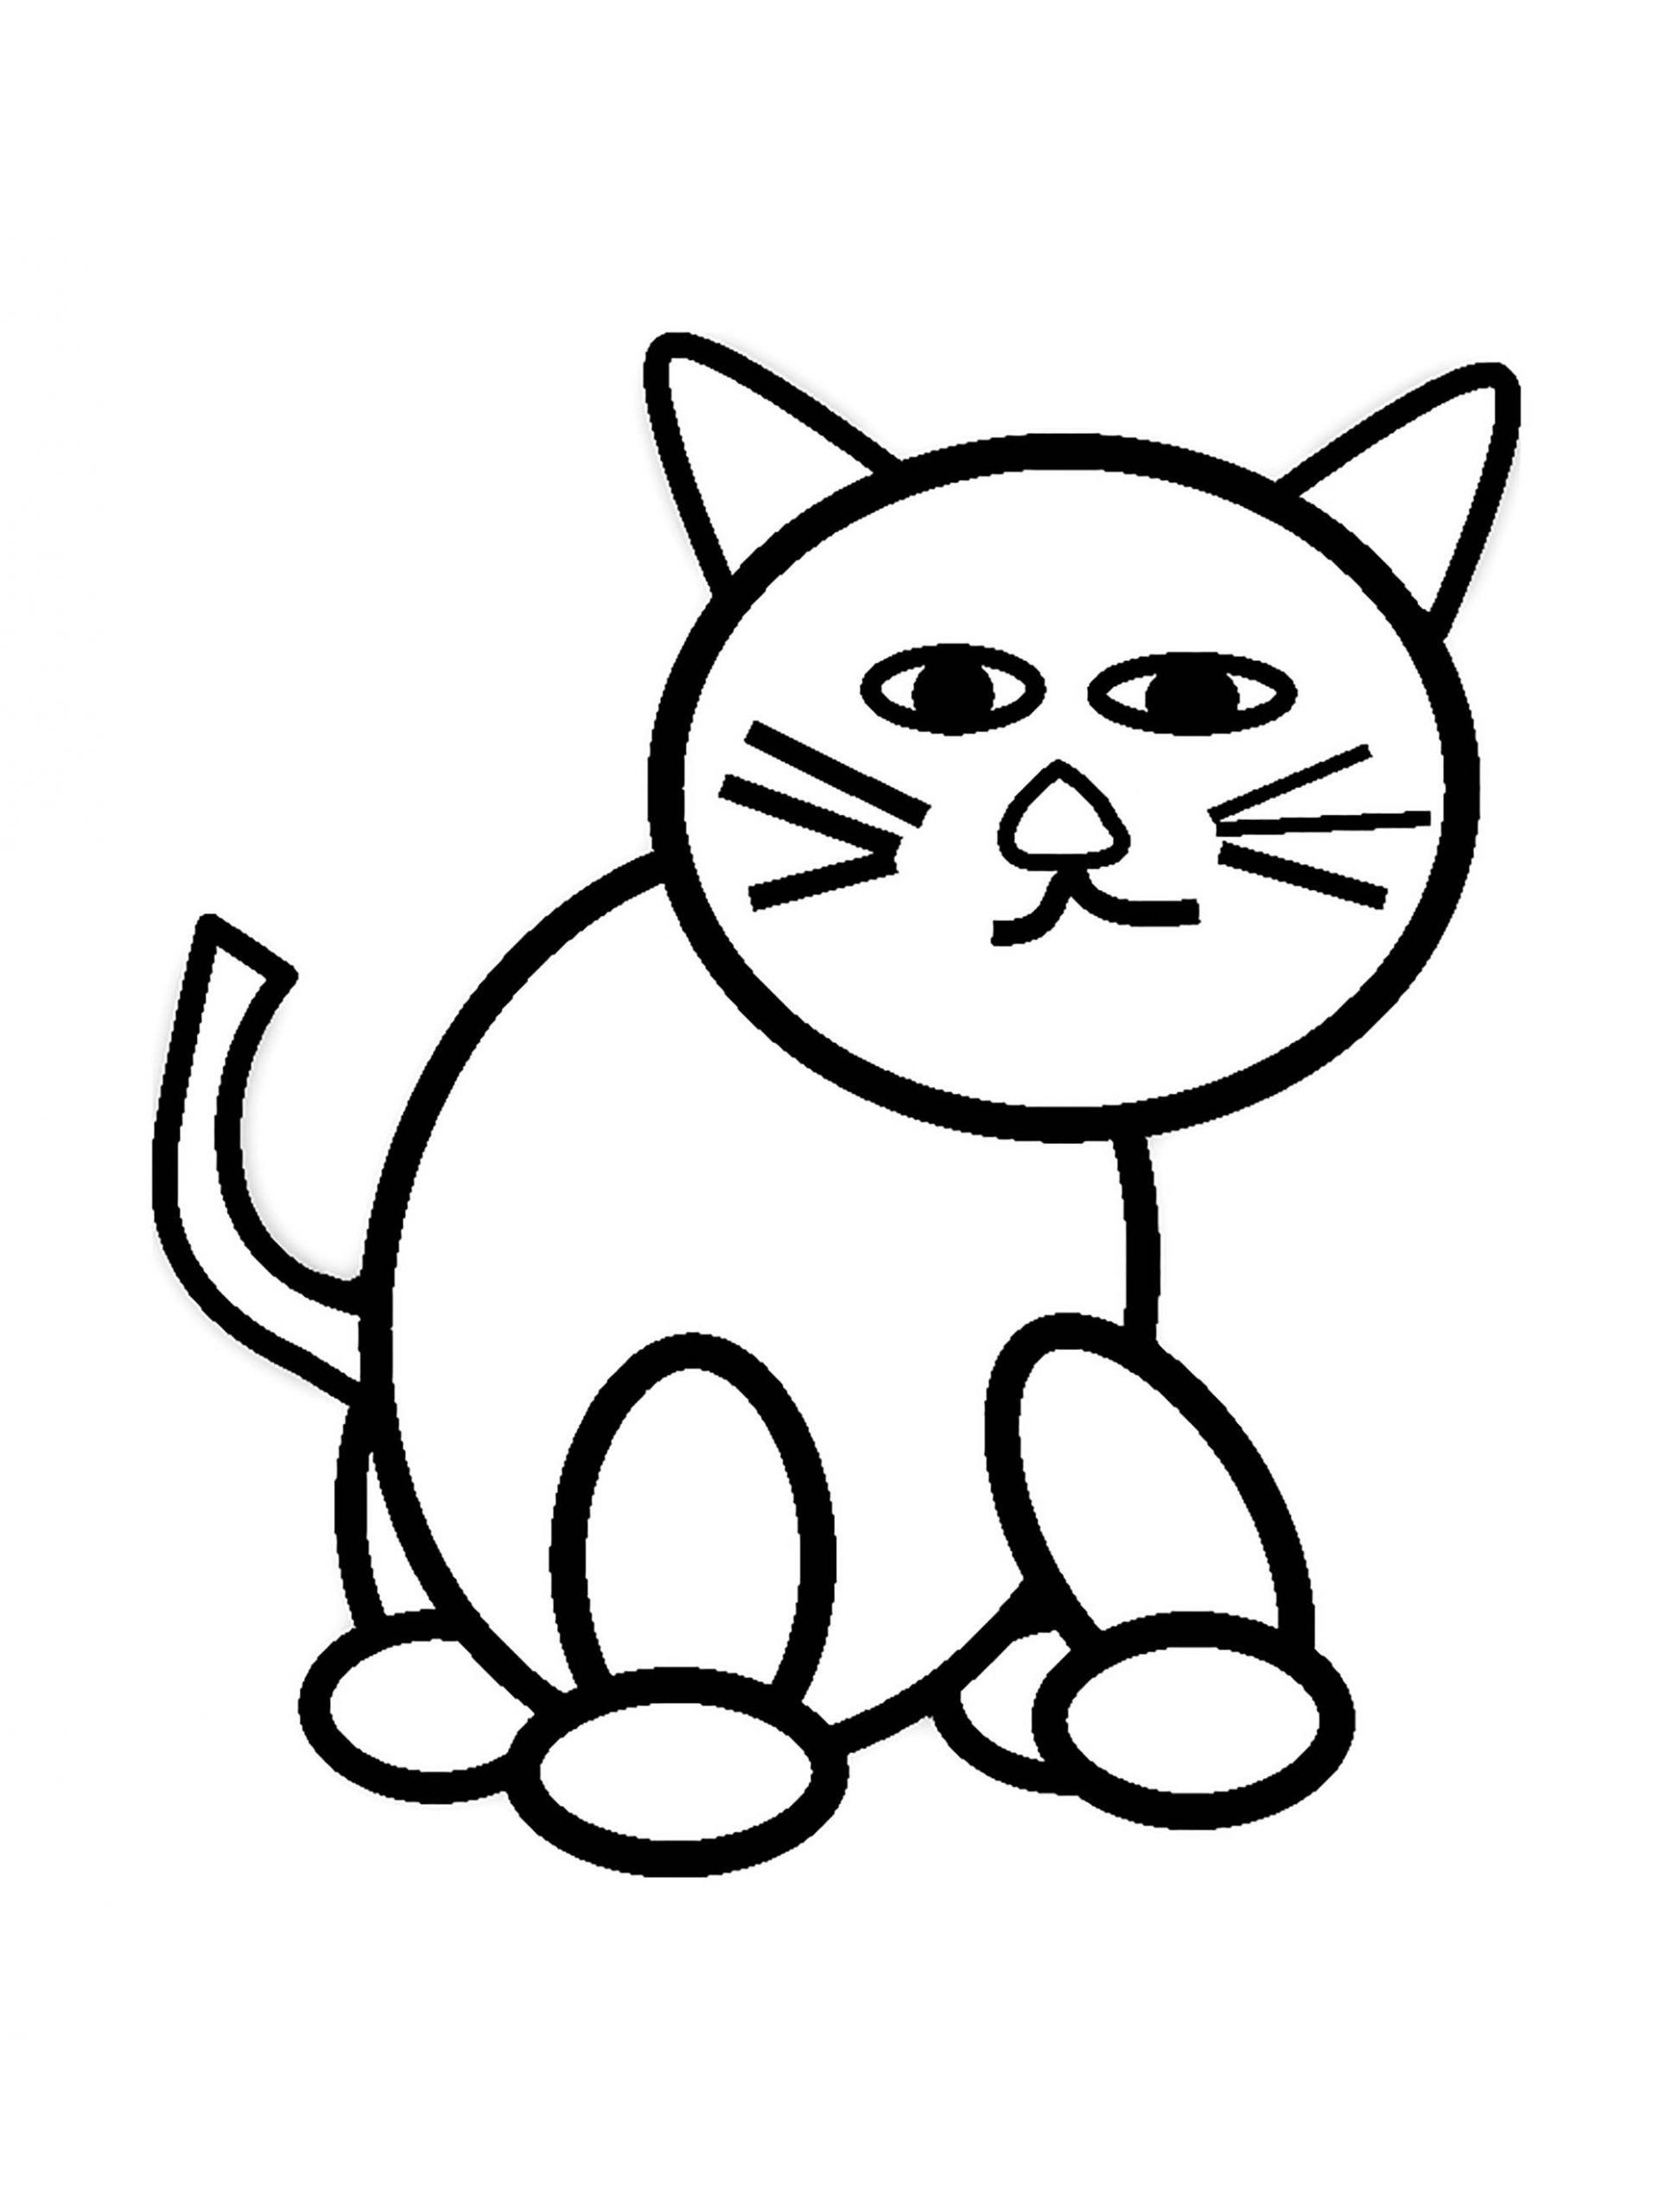 Simple Coloring Page For Kid Cat For Kids Simple Drawing Cats Kids Coloring Pages Cat Coloring Page Hello Kitty Colouring Pages Easy Coloring Pages